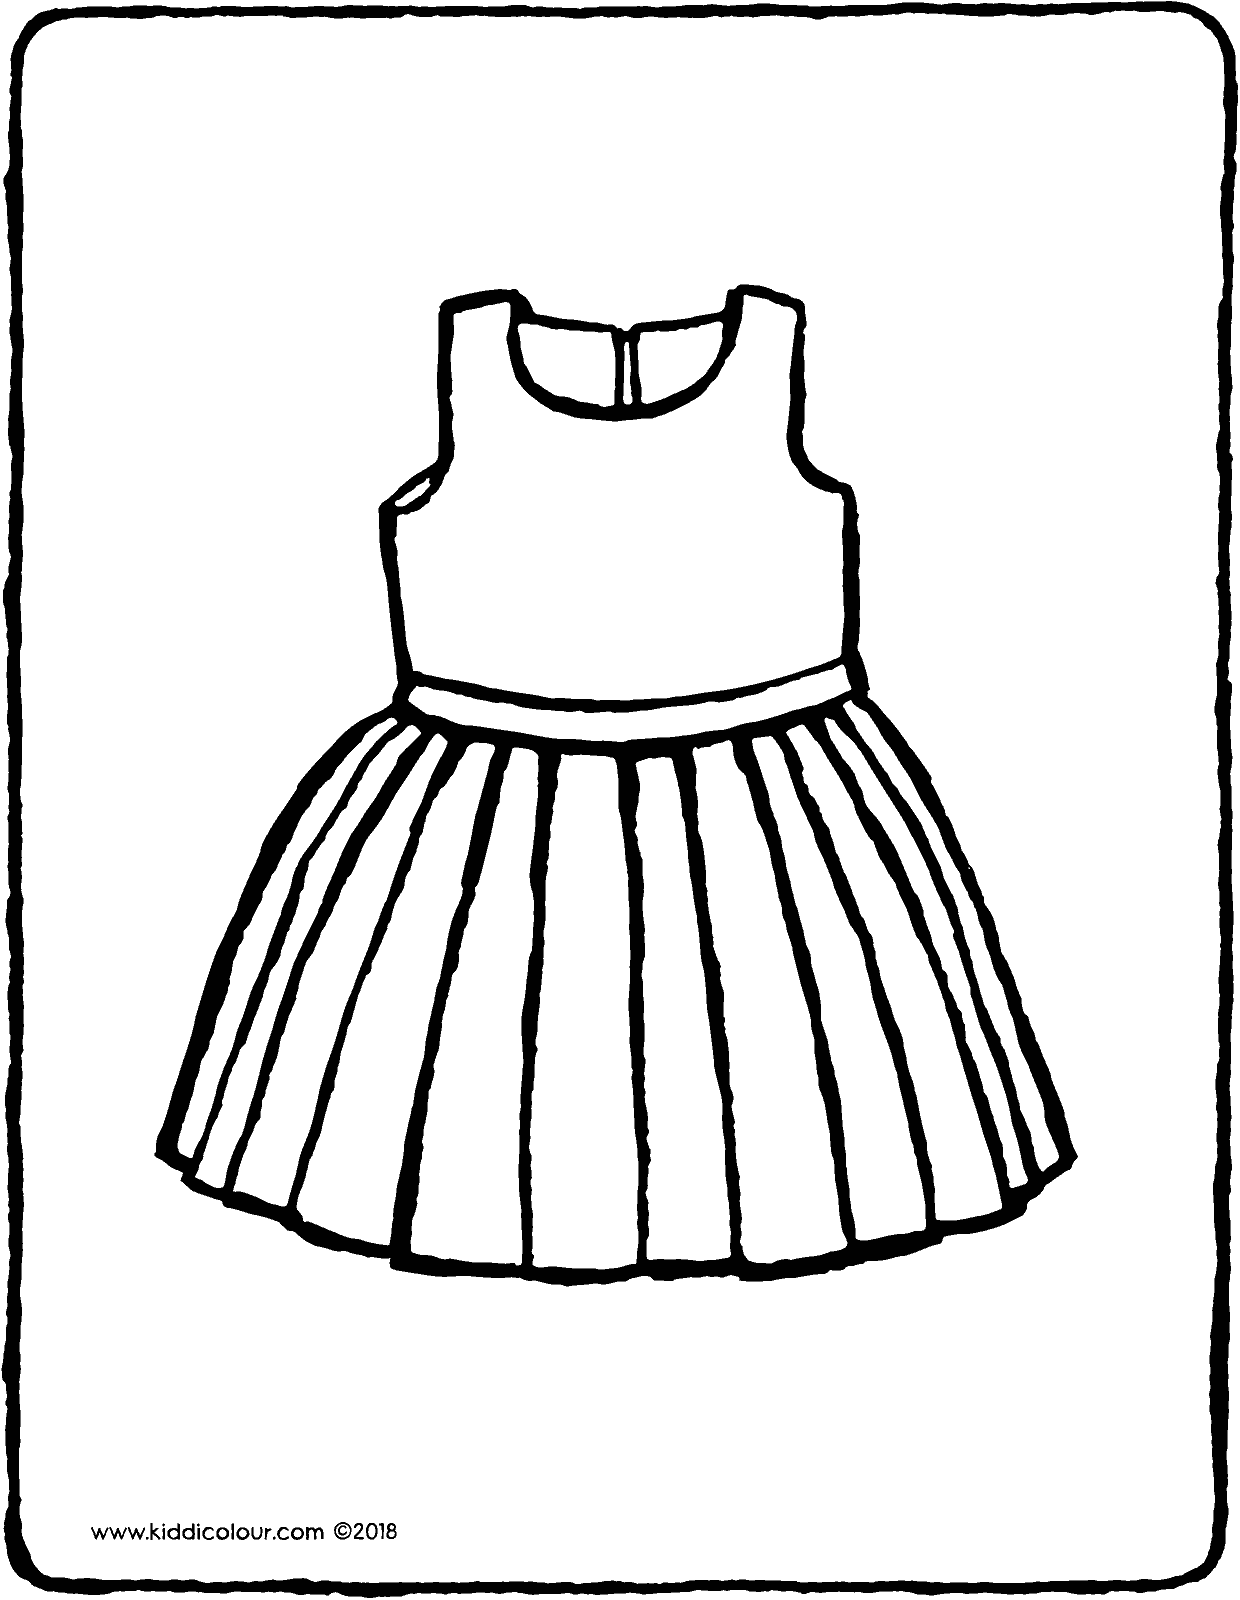 dress colouring page drawing picture 01V